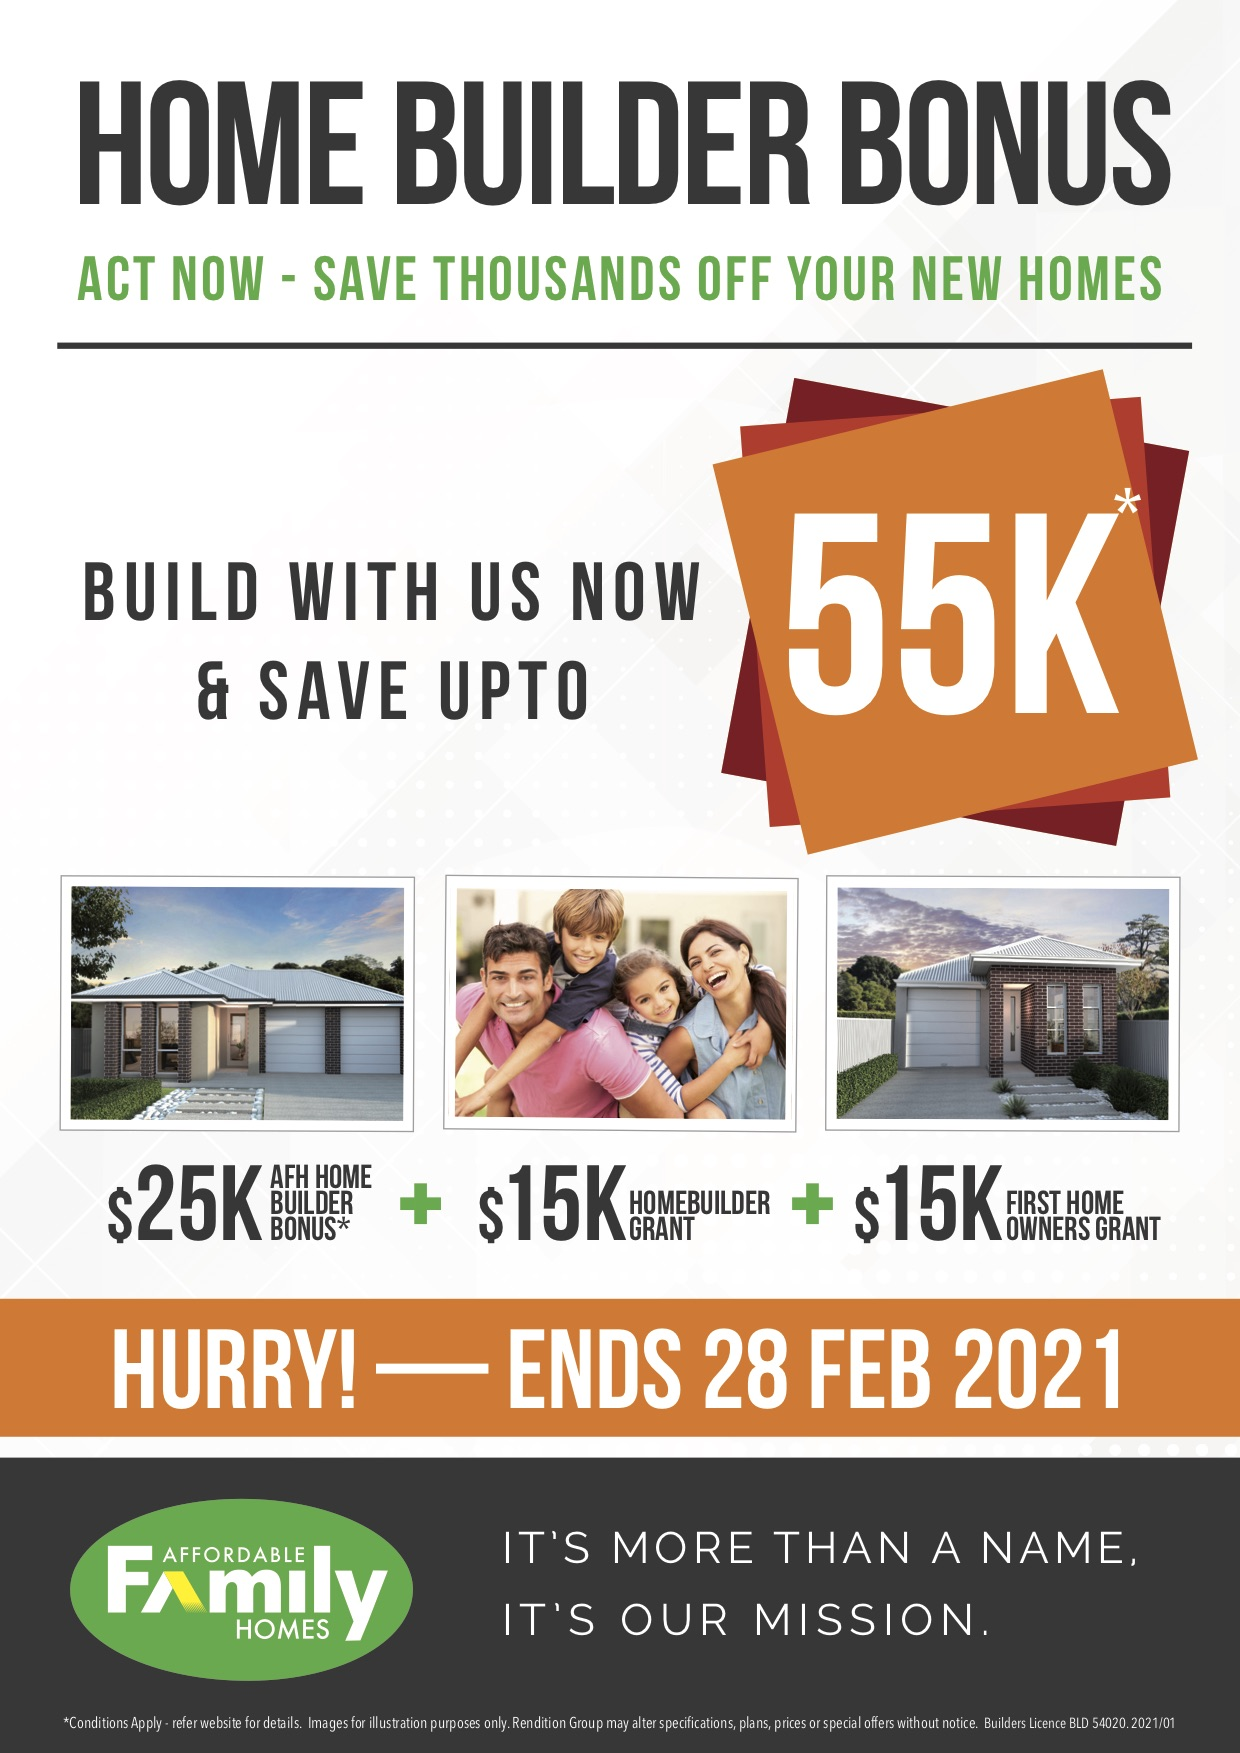 Home Builder Bonus - save up to 55k!*